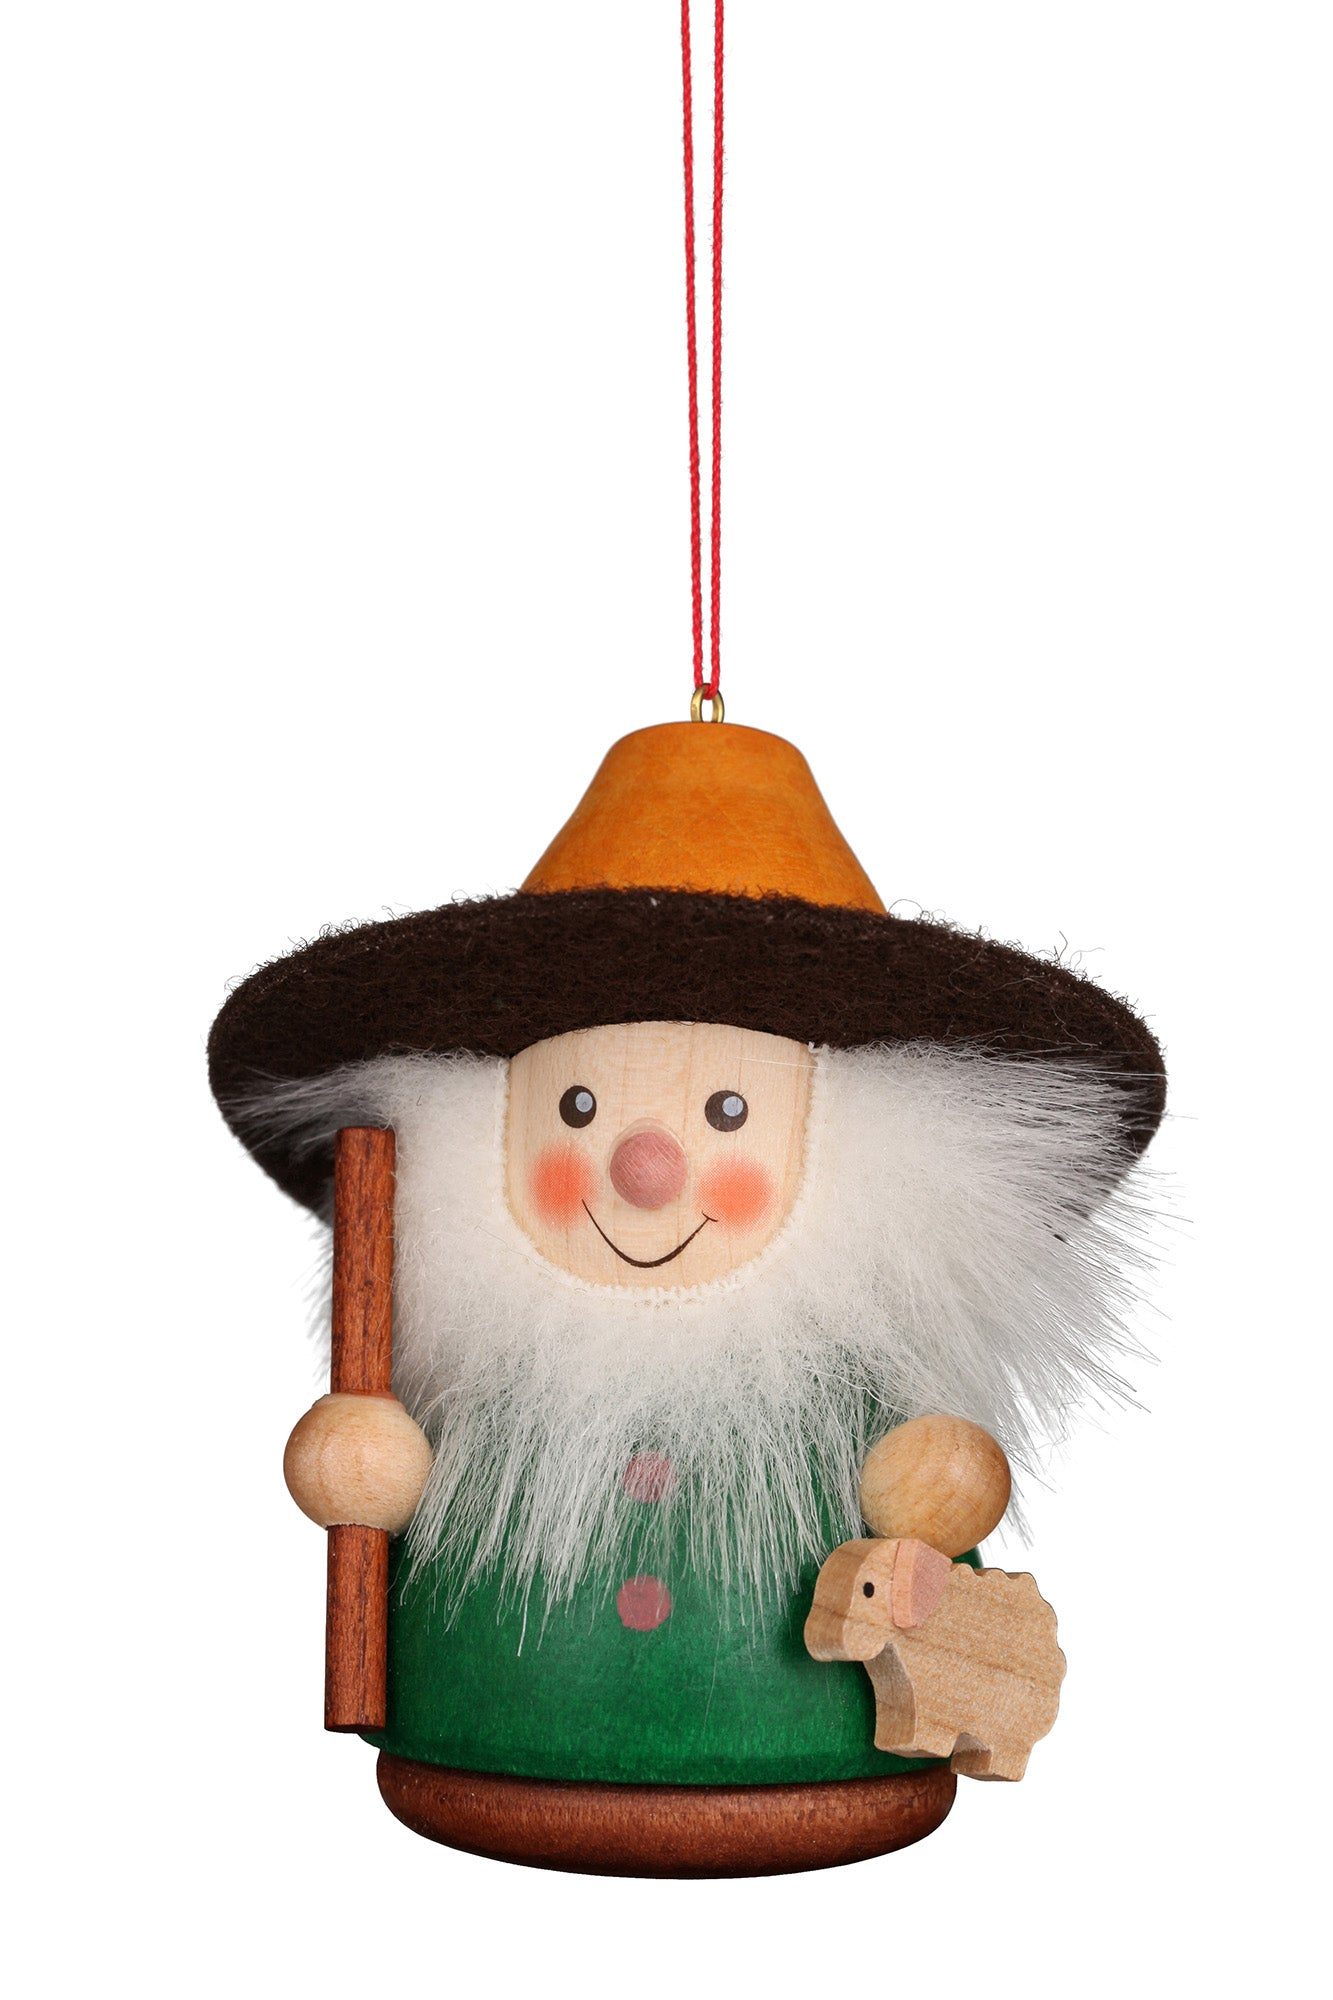 Little gnome Christmas tree decoration - Shepherd (Colourful)